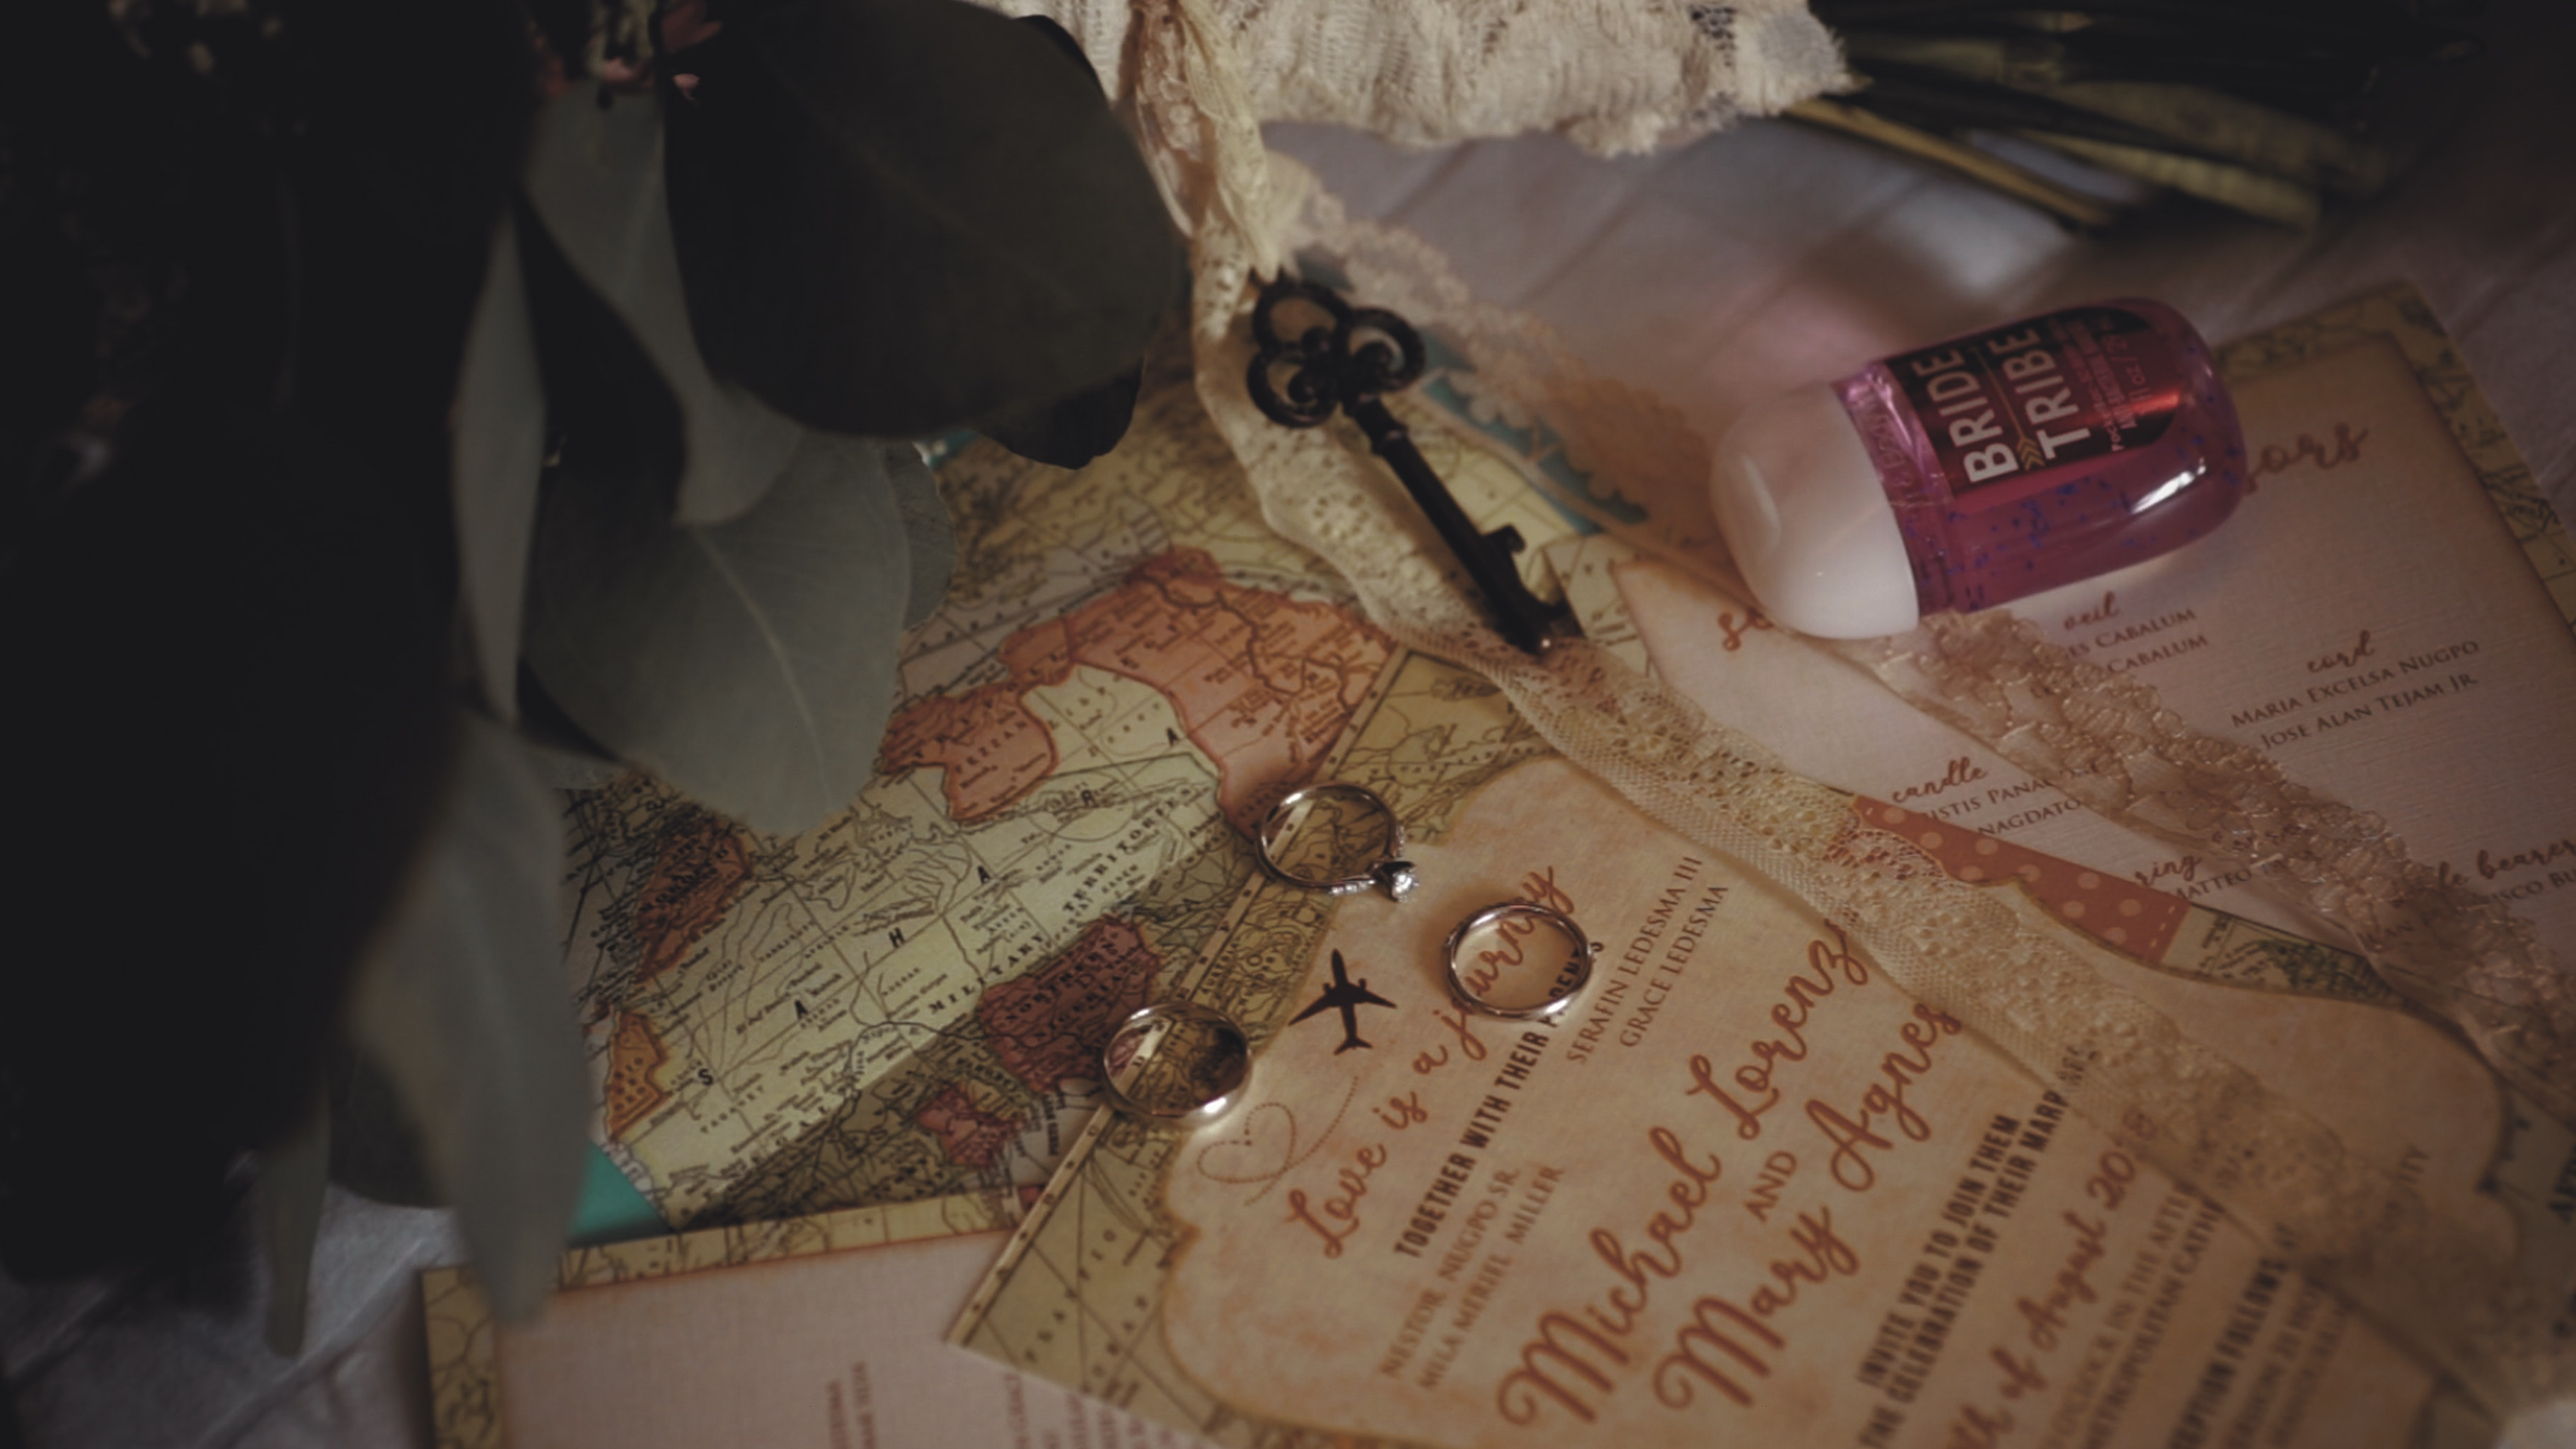 travel-themed wedding invitation and rings on top of a map